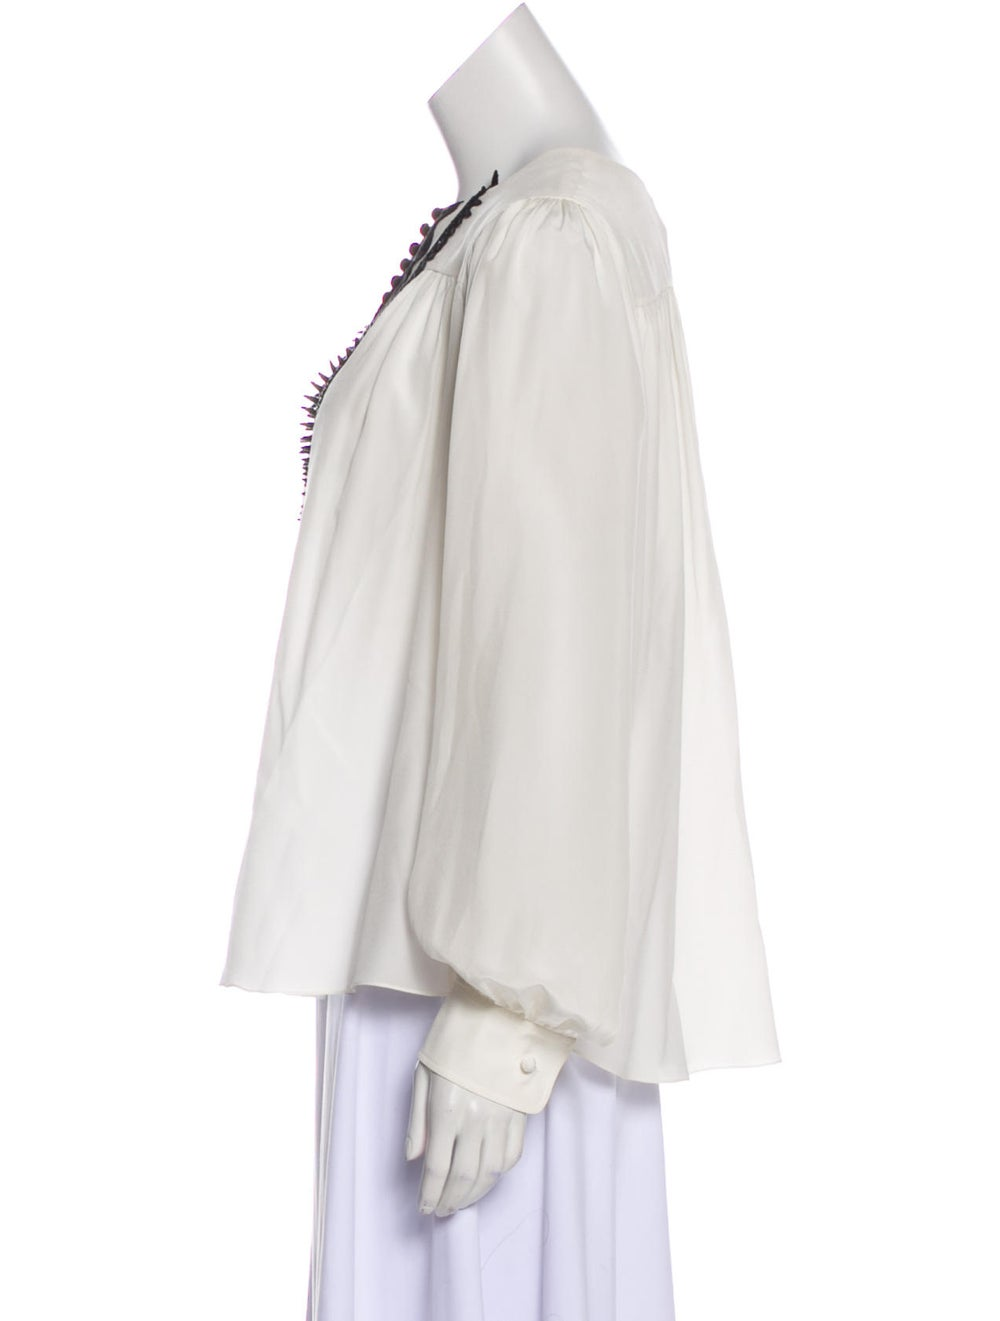 Chloé Silk Long Sleeve Blouse White - image 2